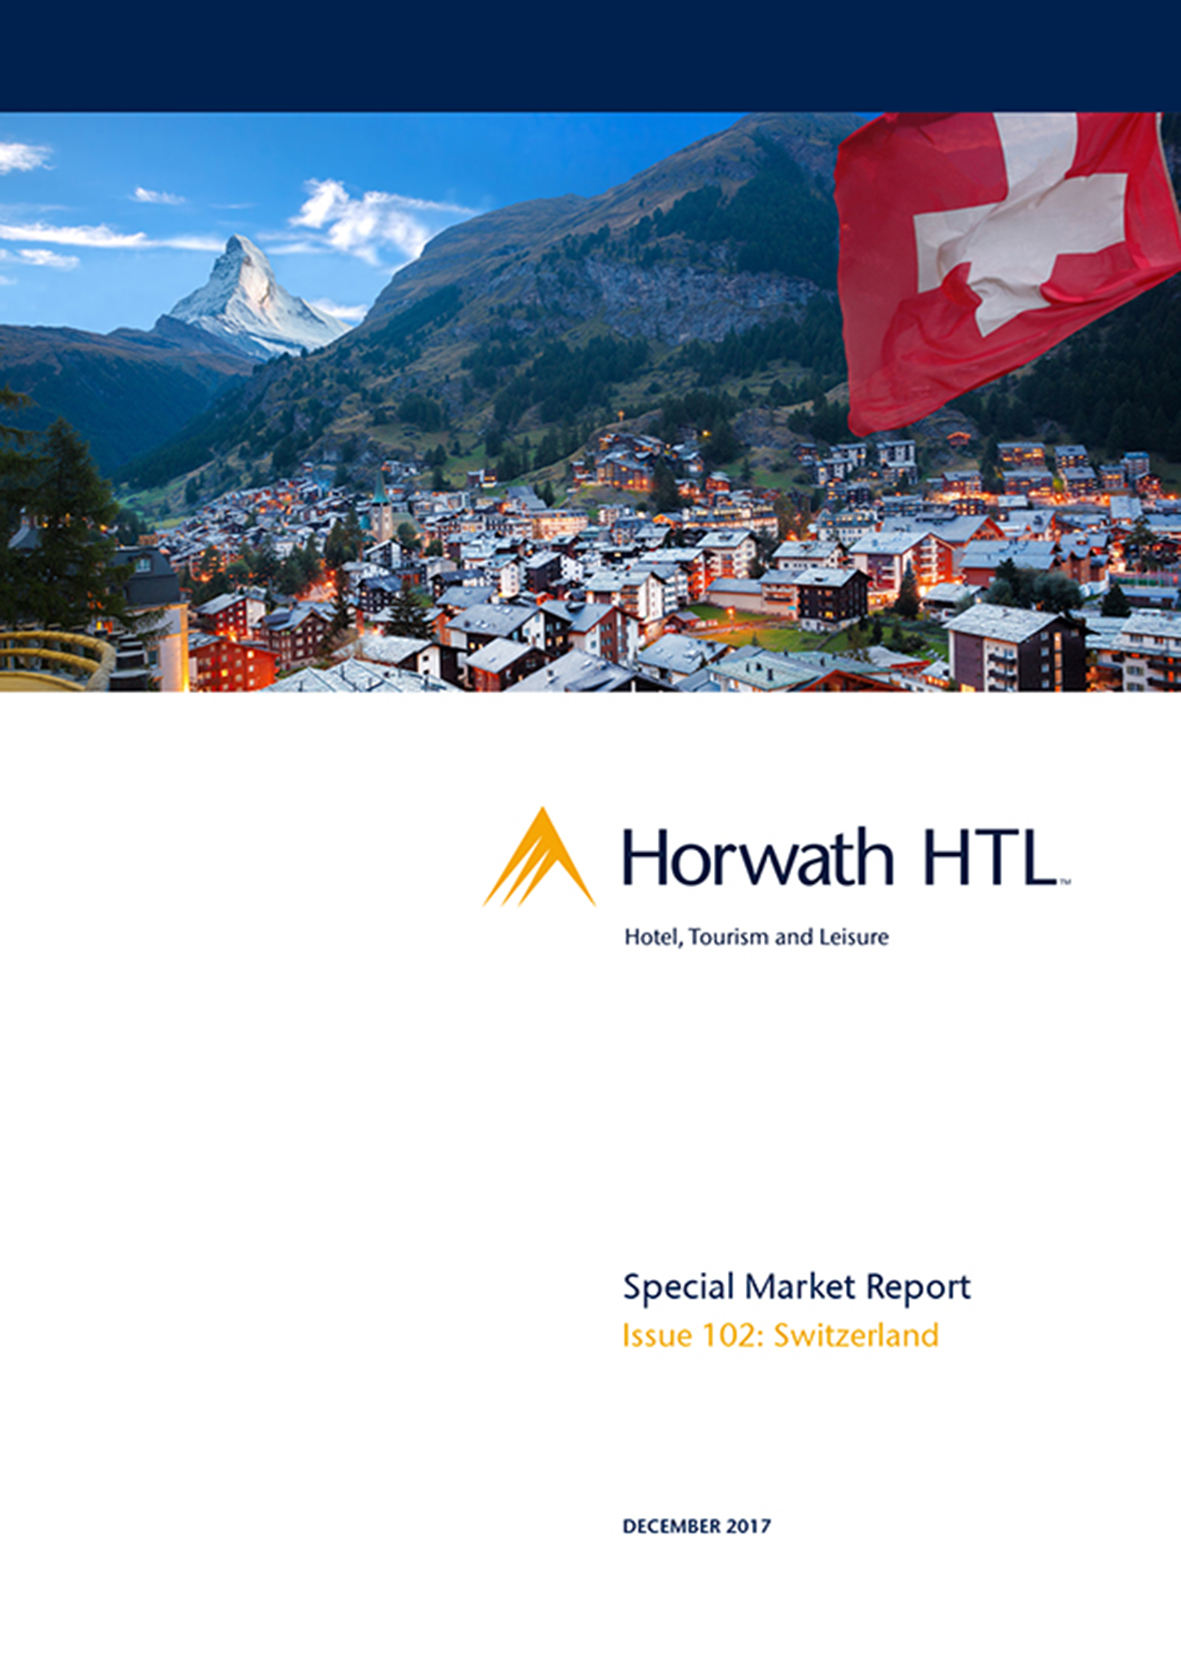 Market Report: Switzerland